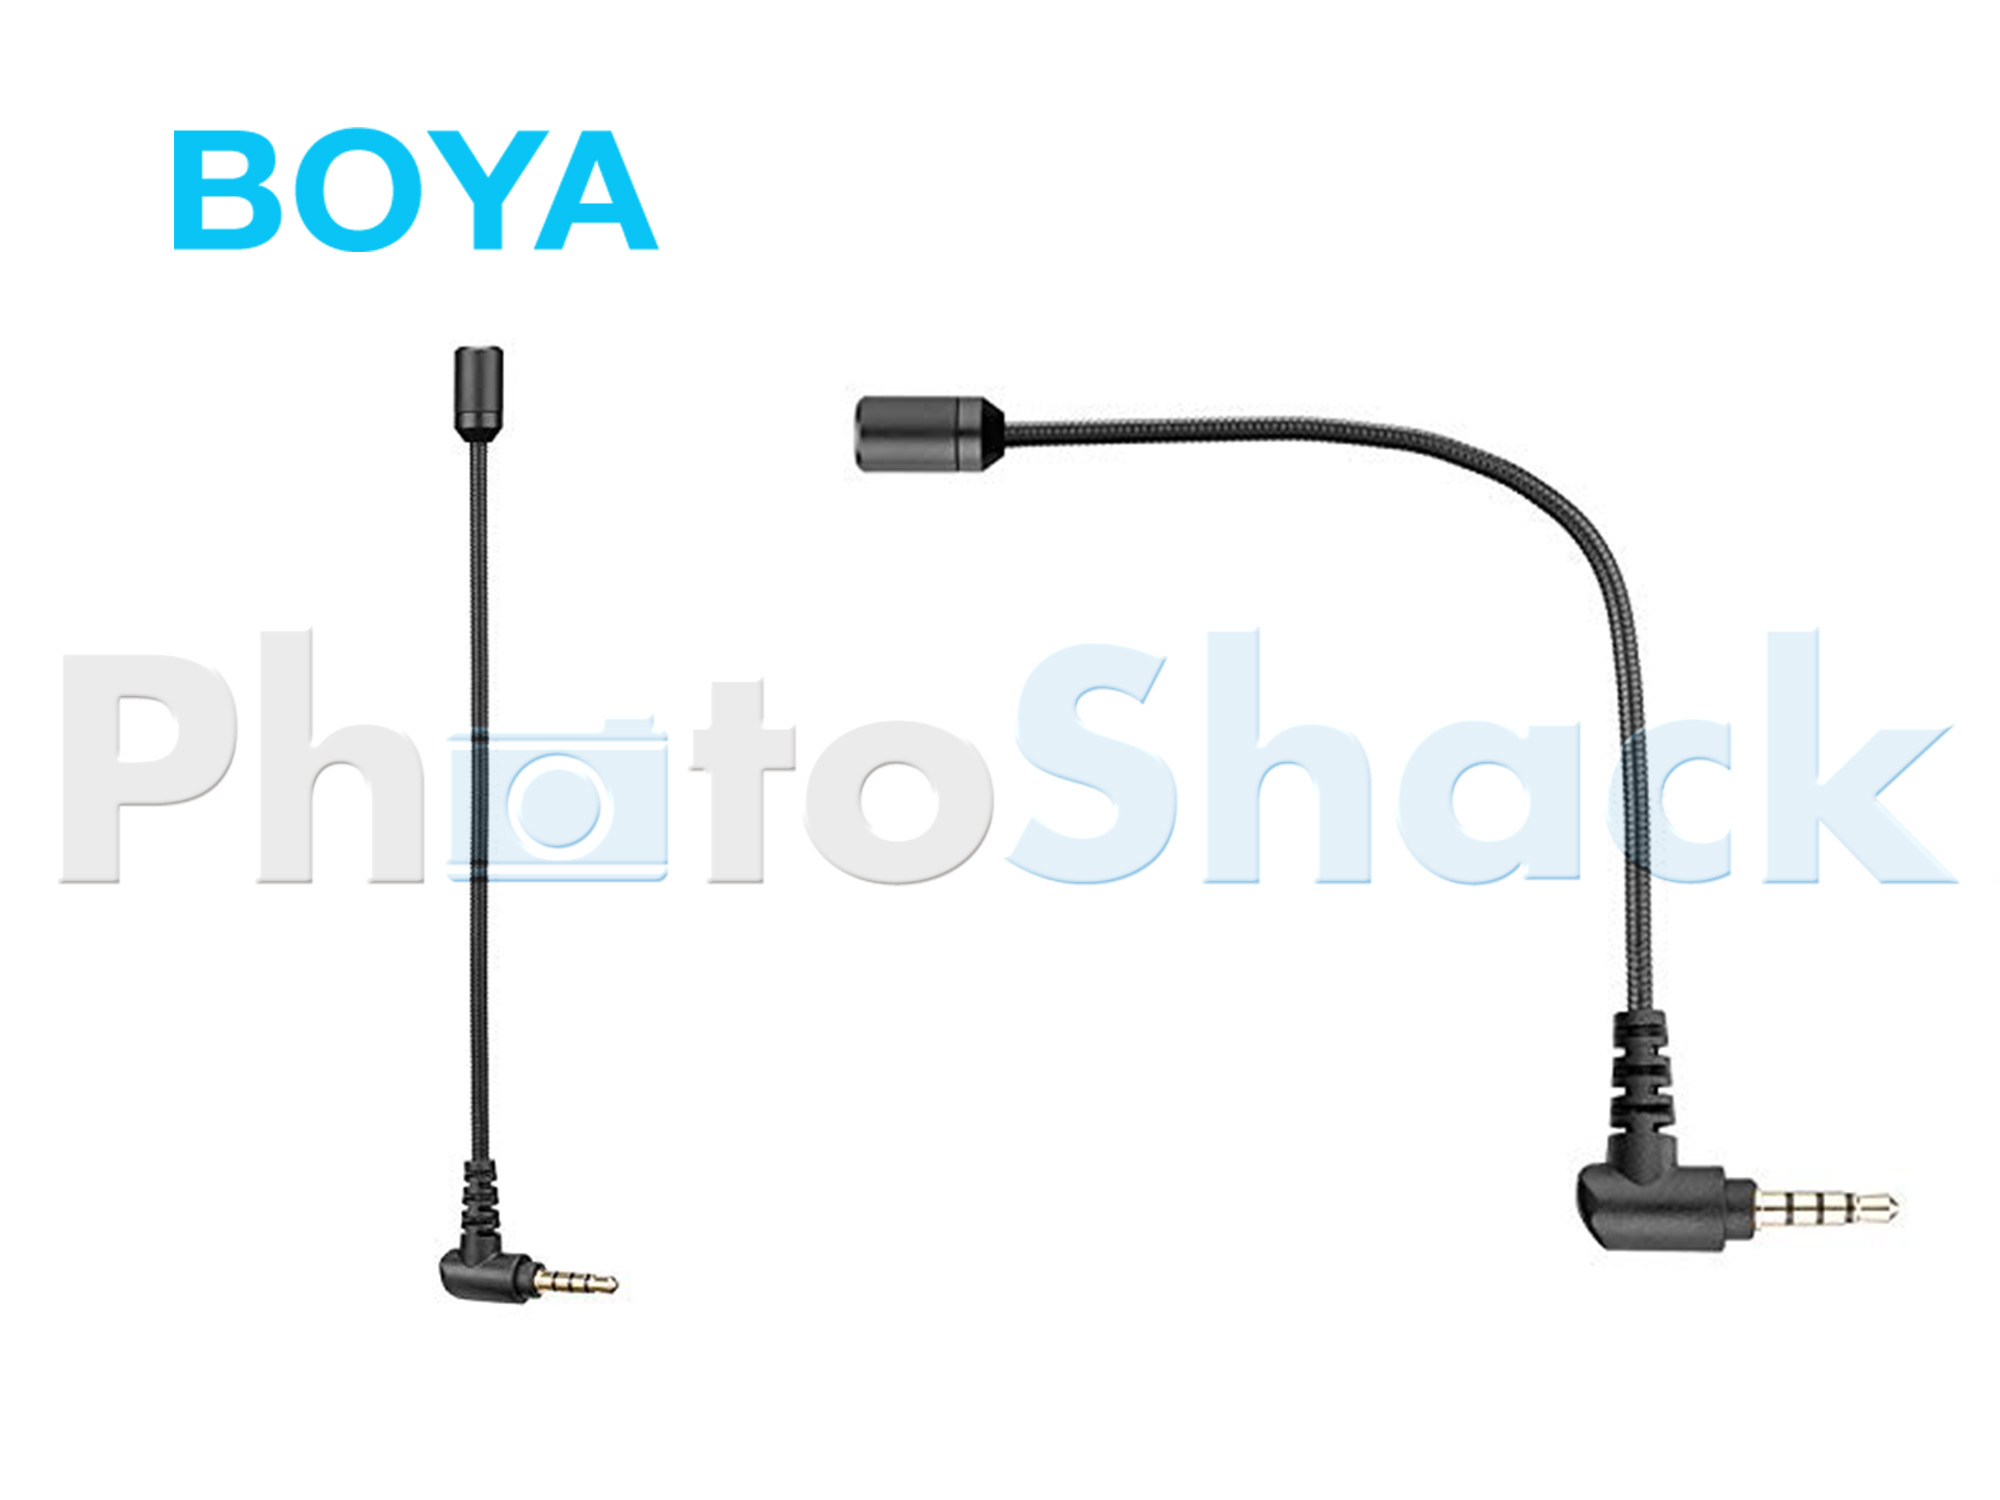 BOYA Omnidirectional Condenser Microphone 3.5mm TRRS Connector